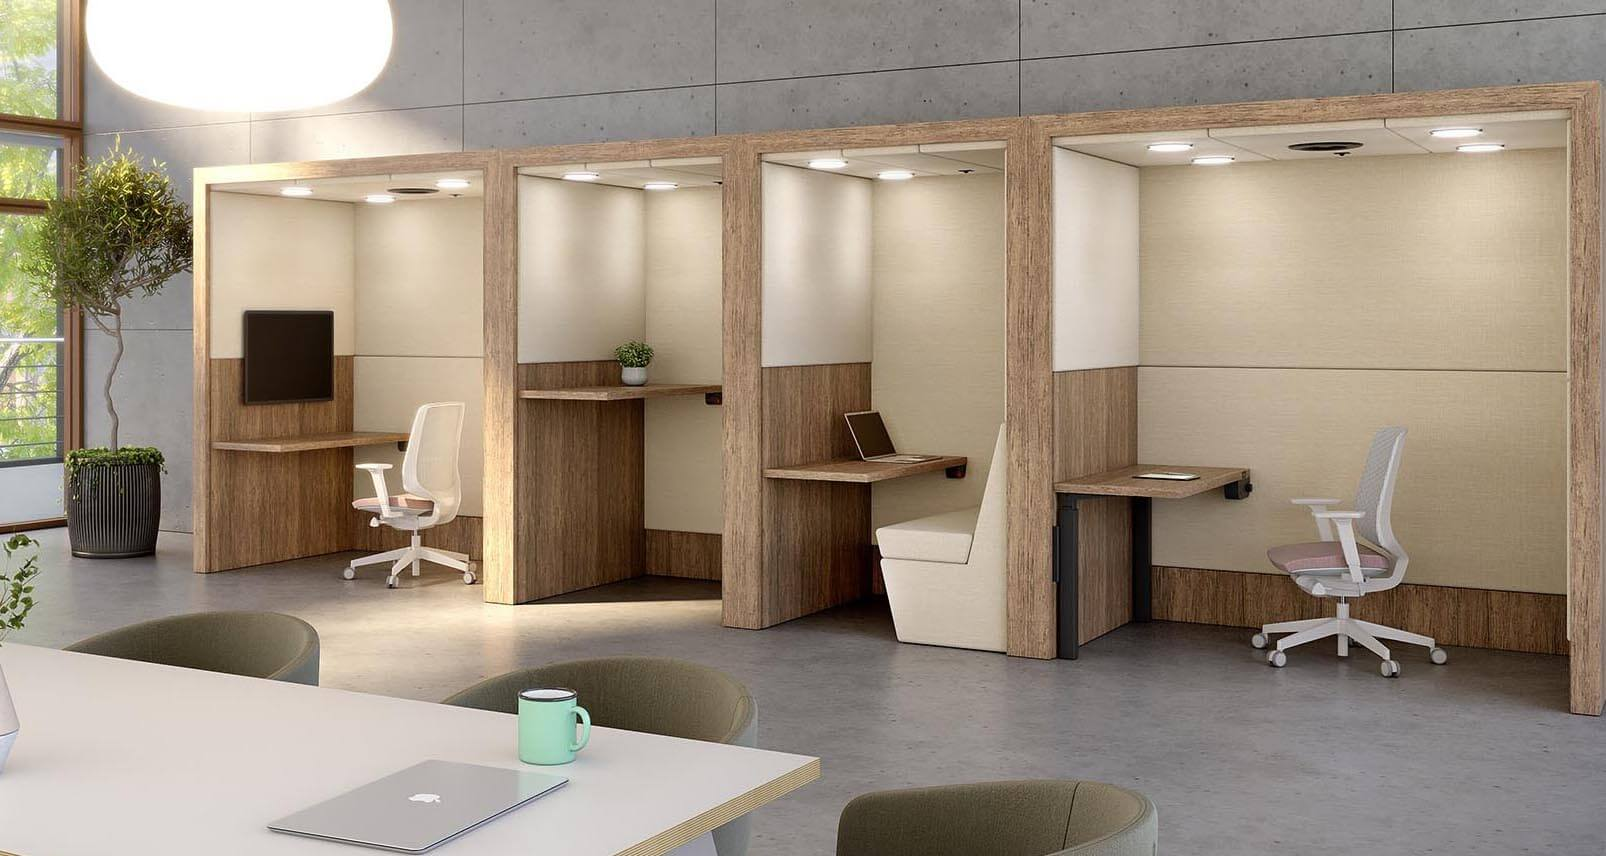 Spacestor Portals for Zoom call privacy and limiting noise disruption in the office